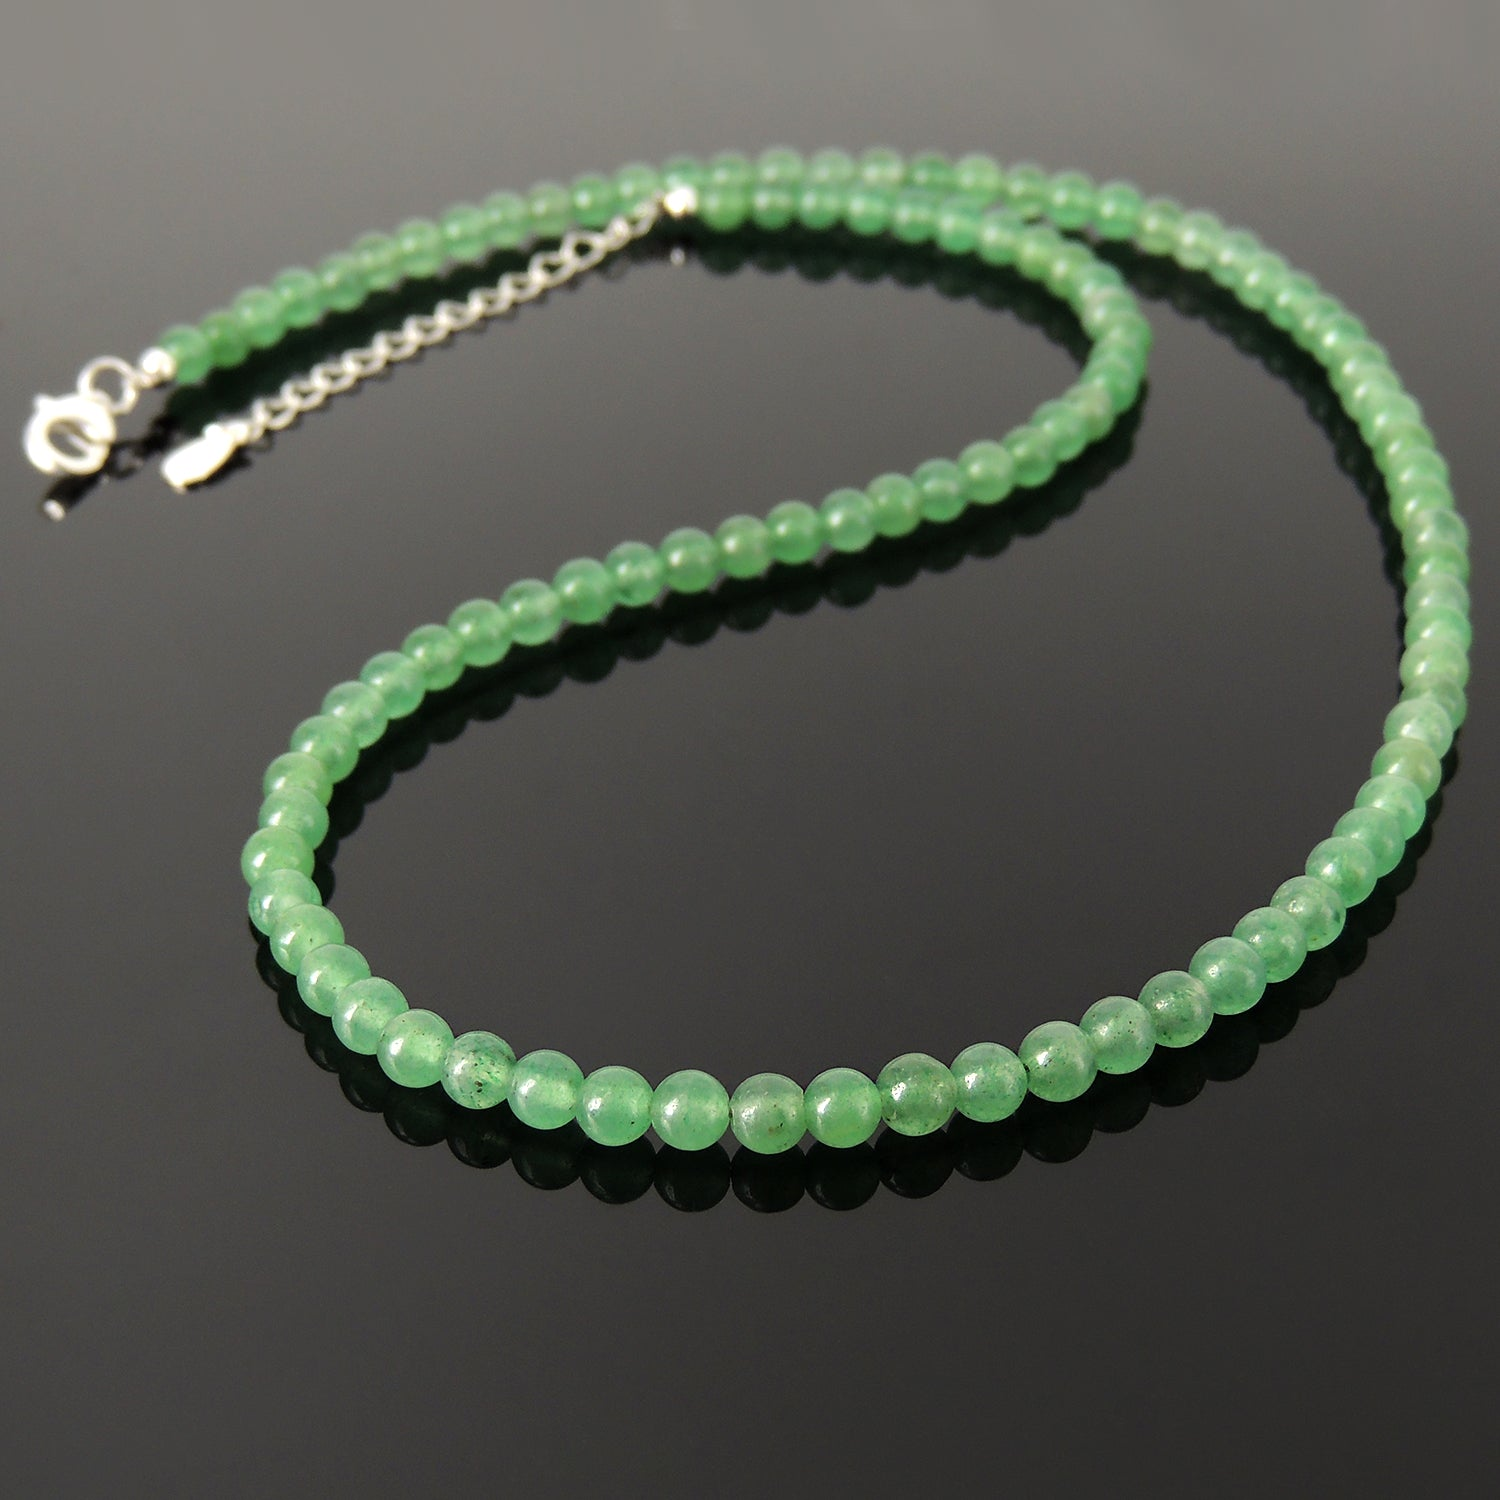 Handmade Healing Natural Aventurine Quartz Gemstone Necklace - Men's Women's Daily Wear, Awareness with 4mm Beads, Genuine Non-Plated S925 Sterling Silver Adjustable Chain & Clasp NK257